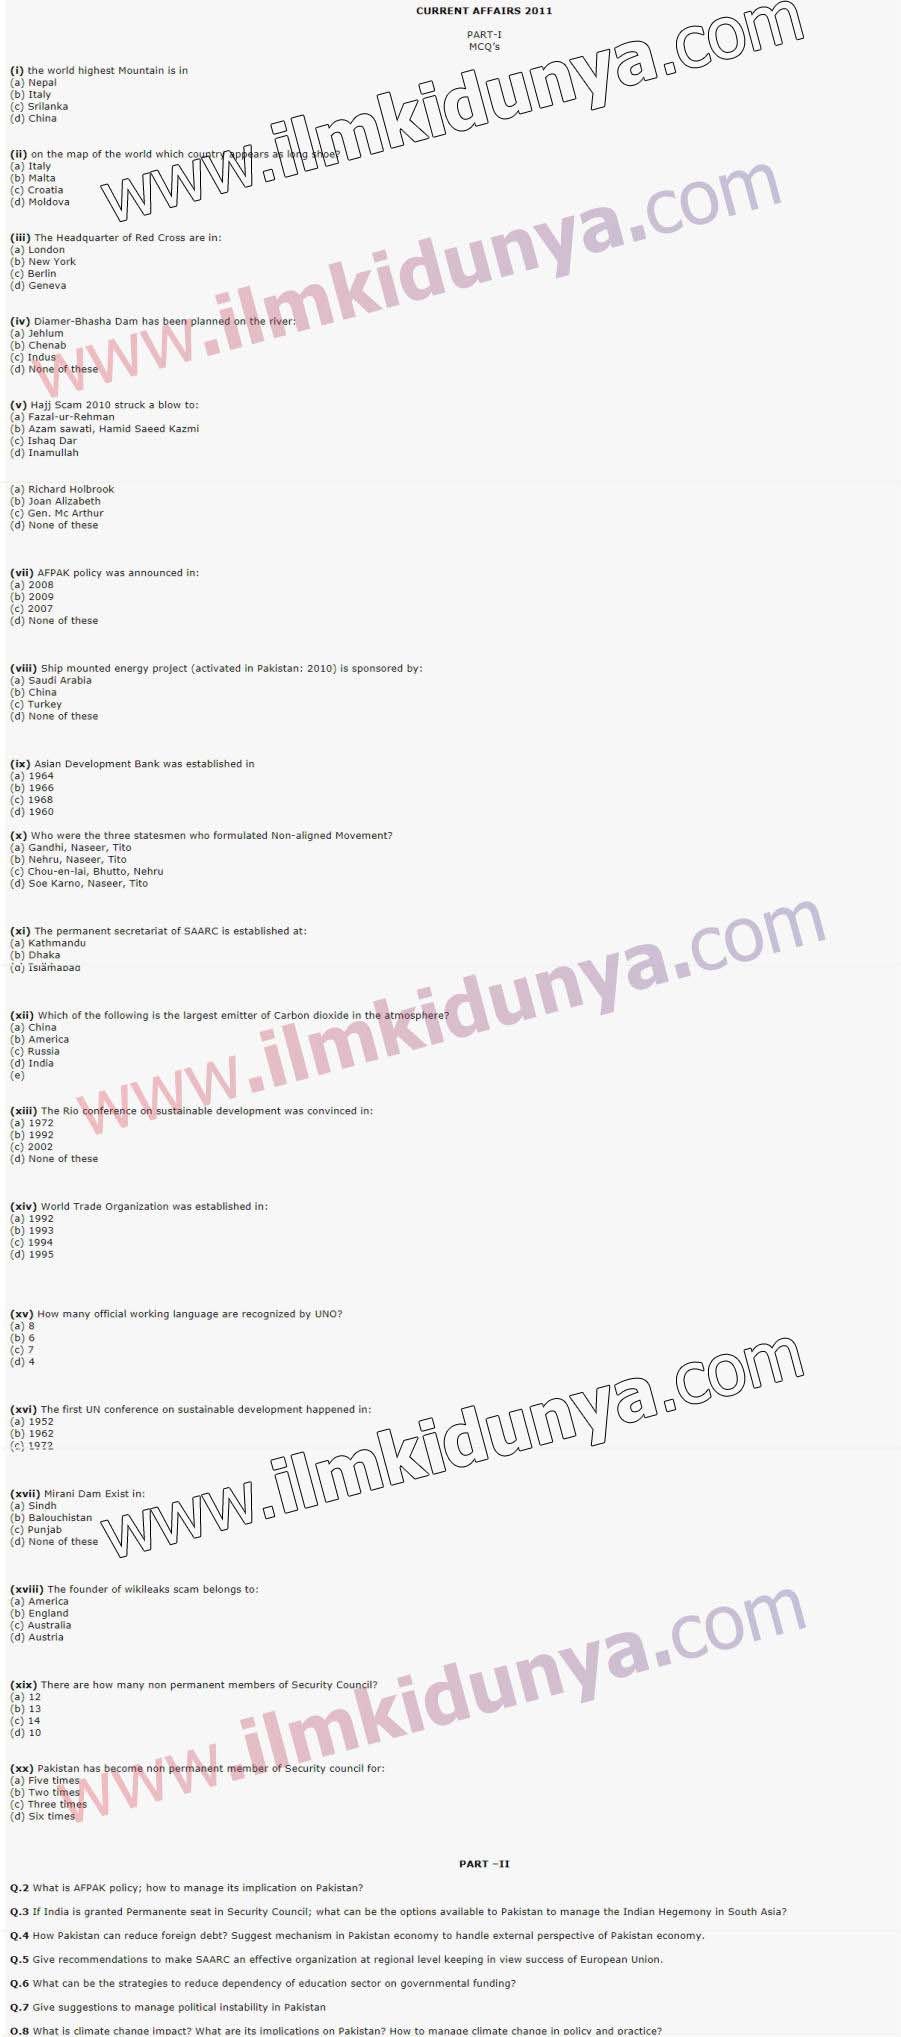 Css past papers 2011 current affairs paper 1 gumiabroncs Image collections